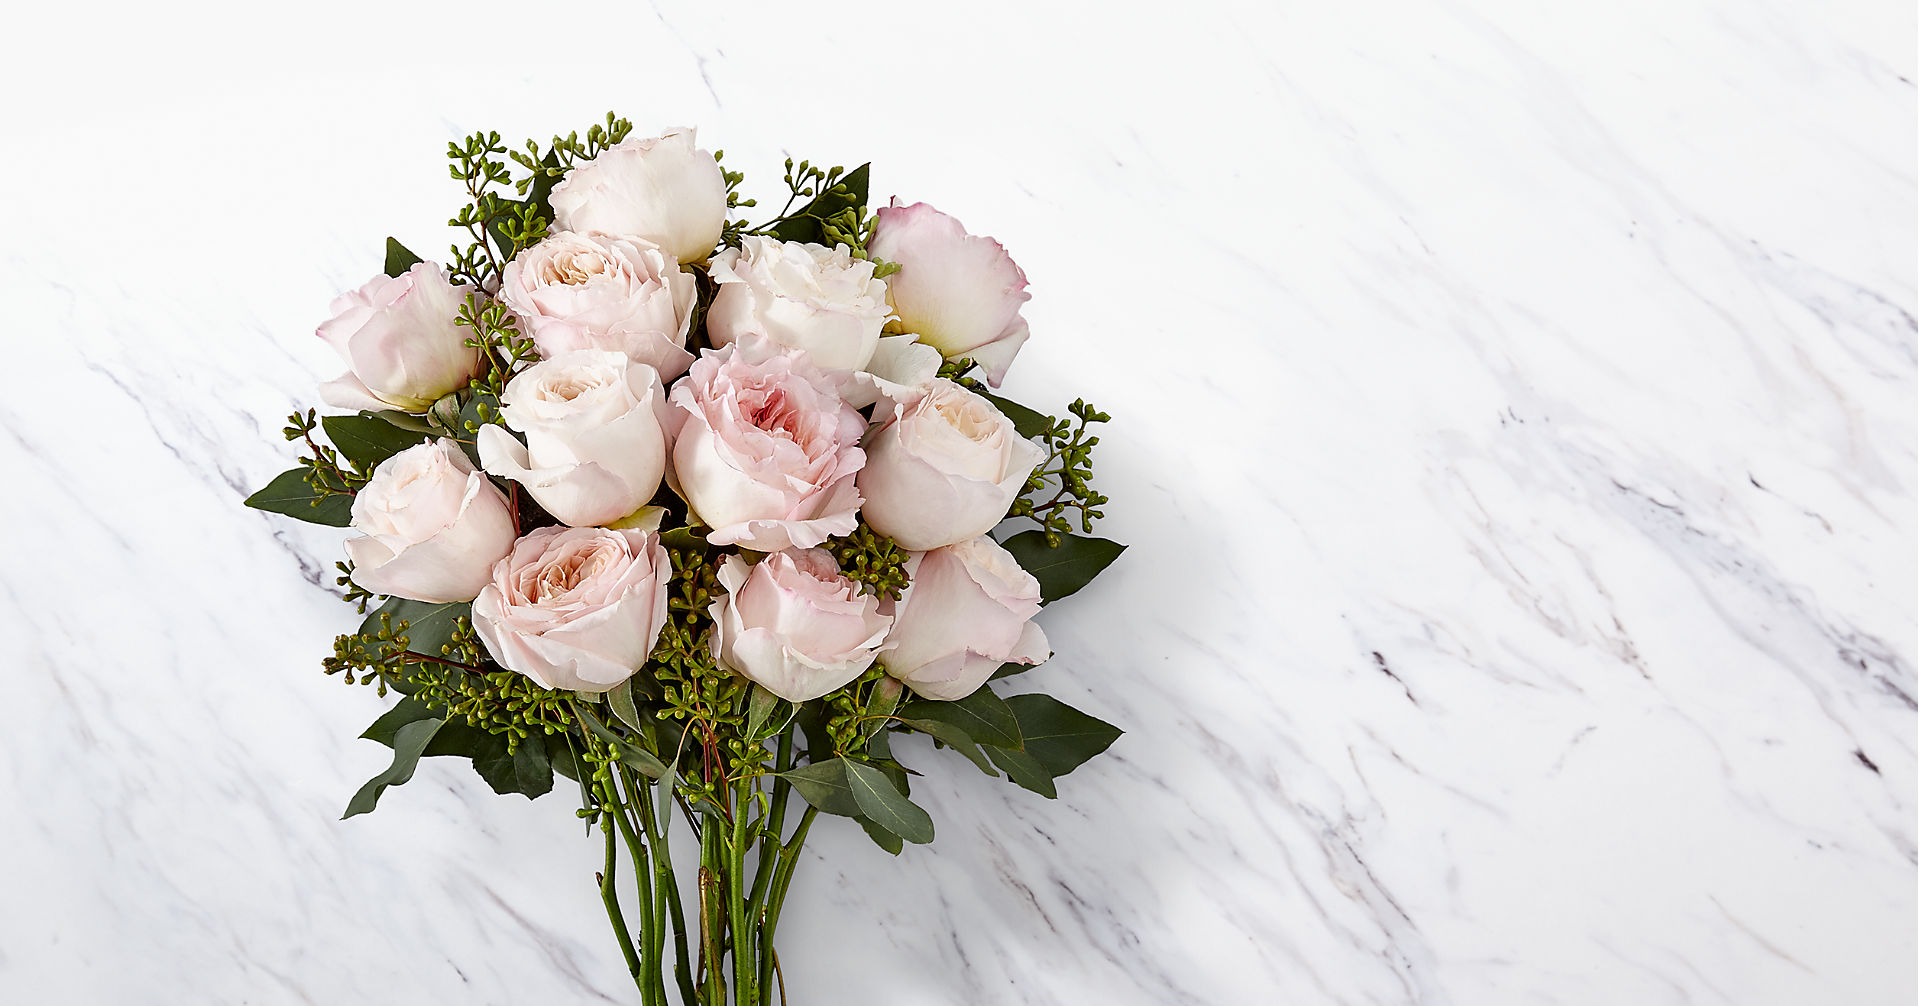 State of Grace Luxury Bouquet - Image 1 Of 3